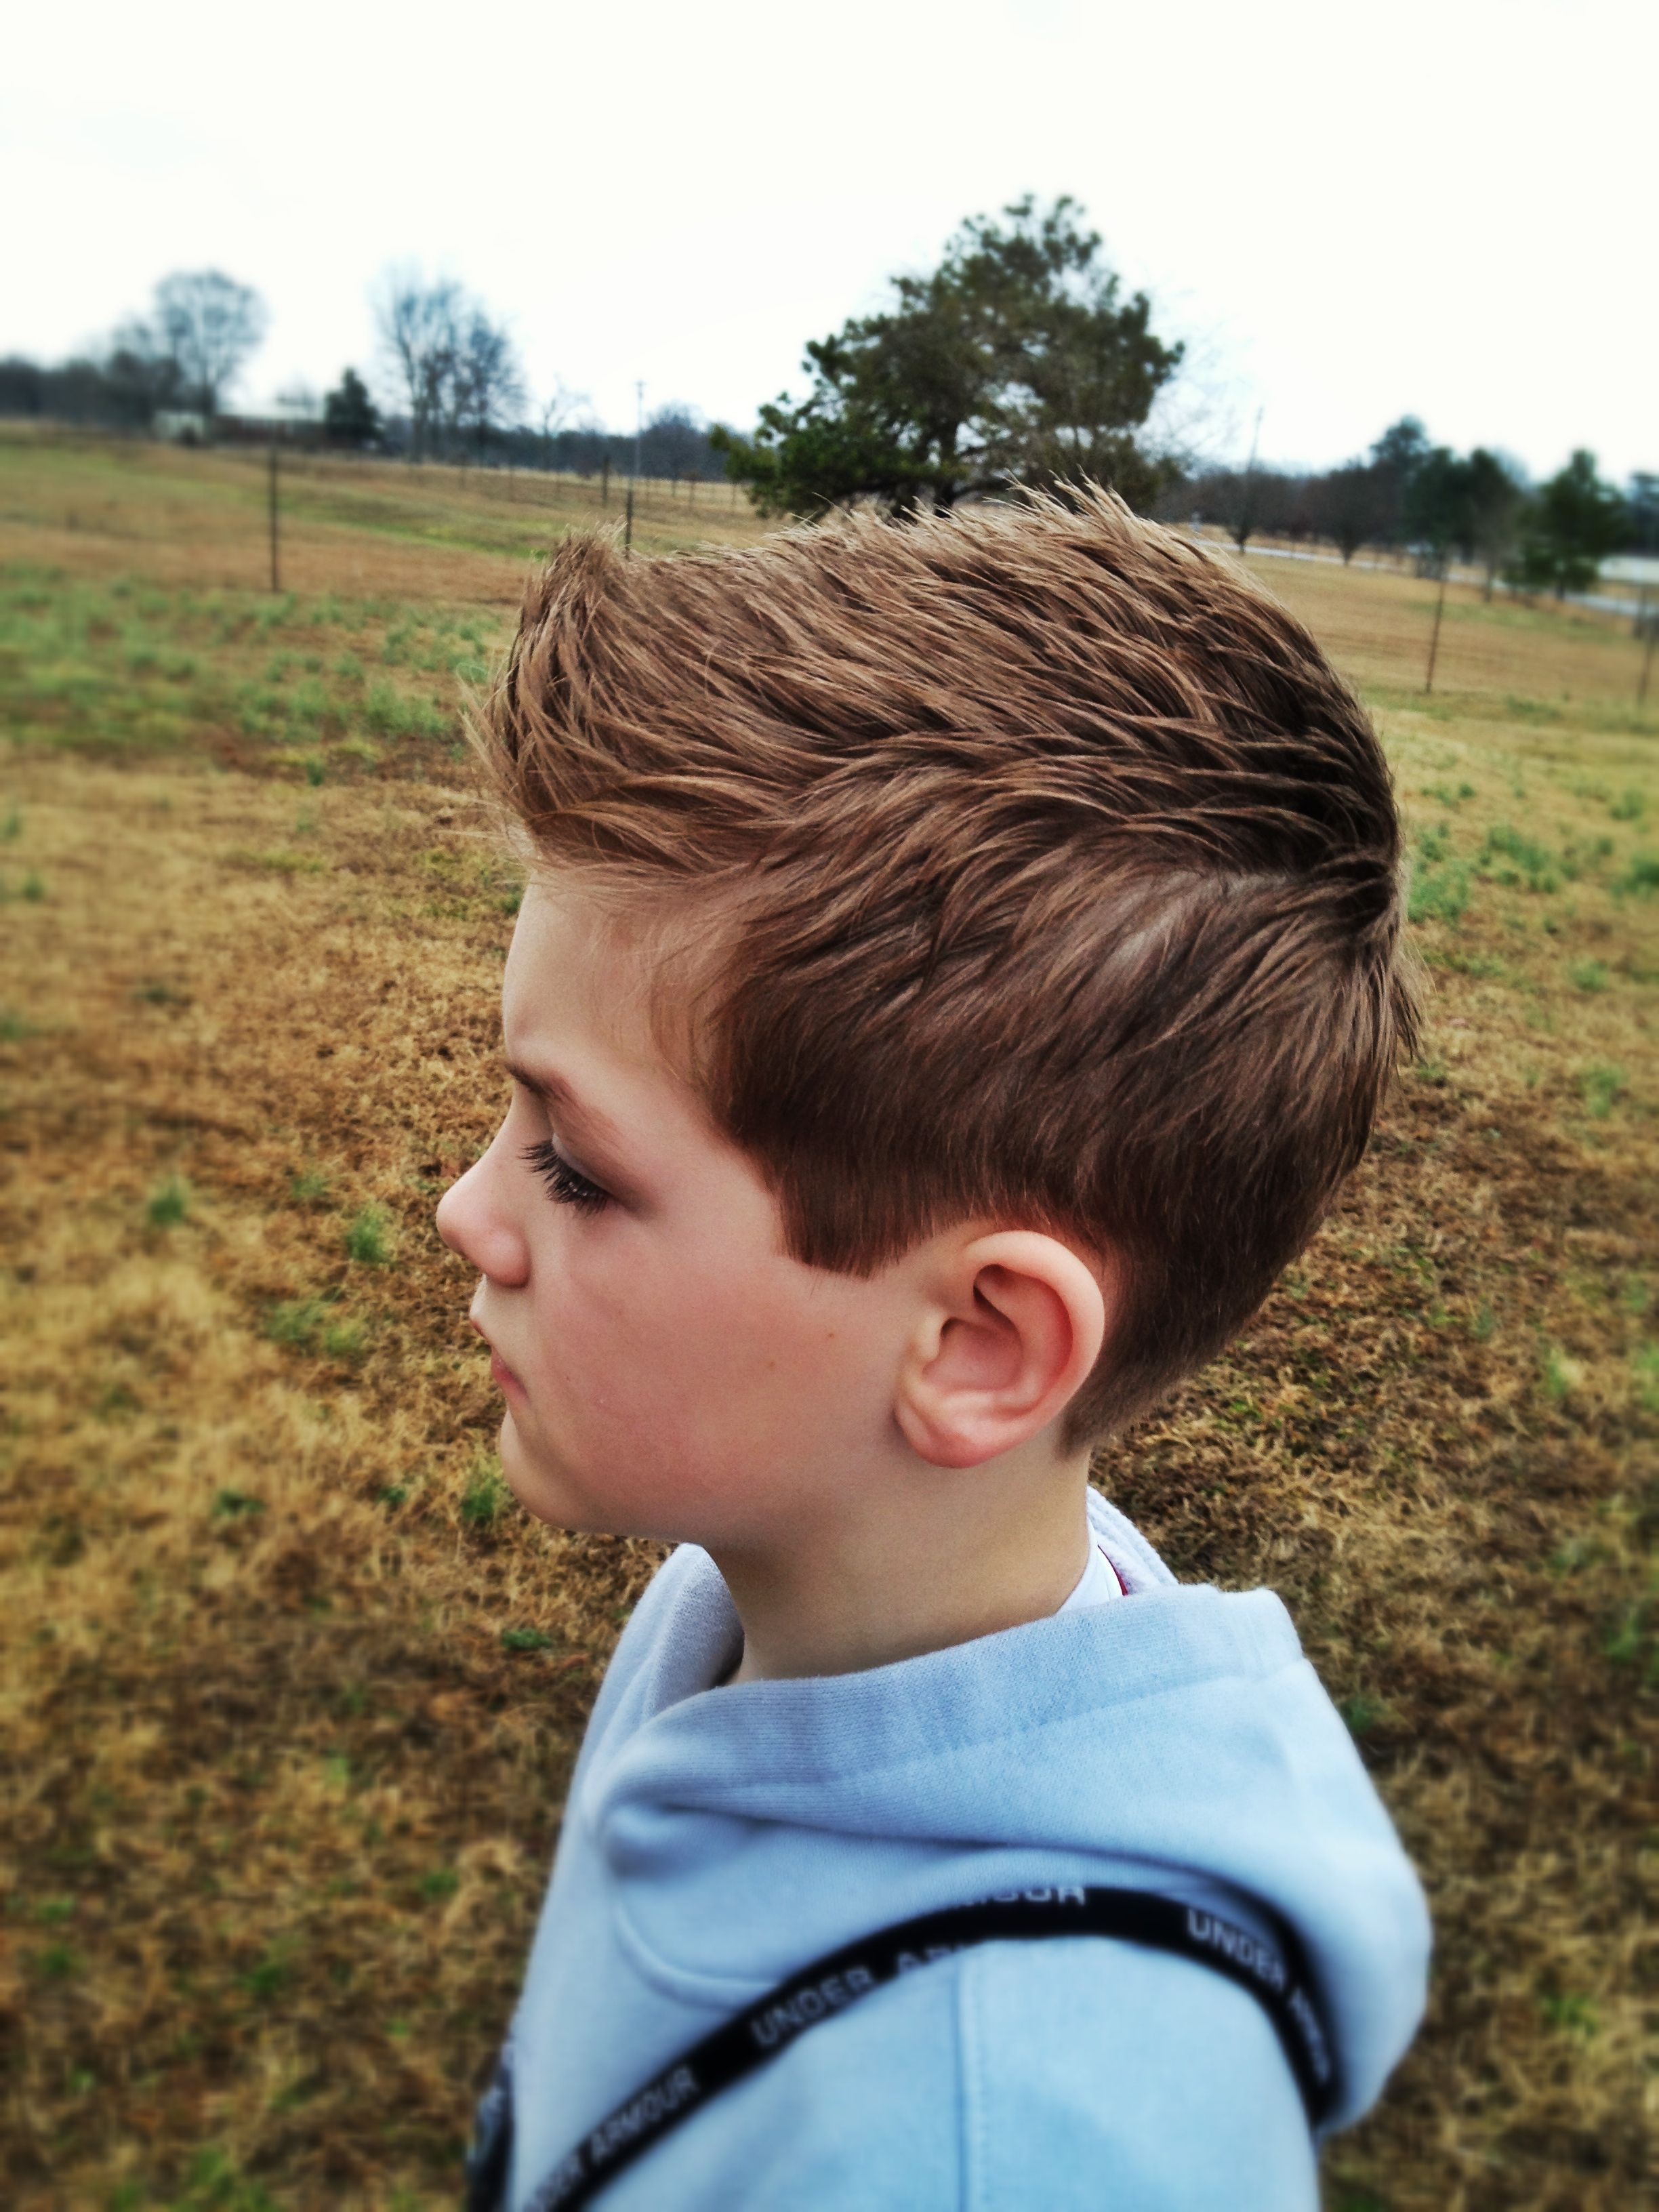 Boy hairstyle back my little harleyus new hairstyle   hair  pinterest  haircuts